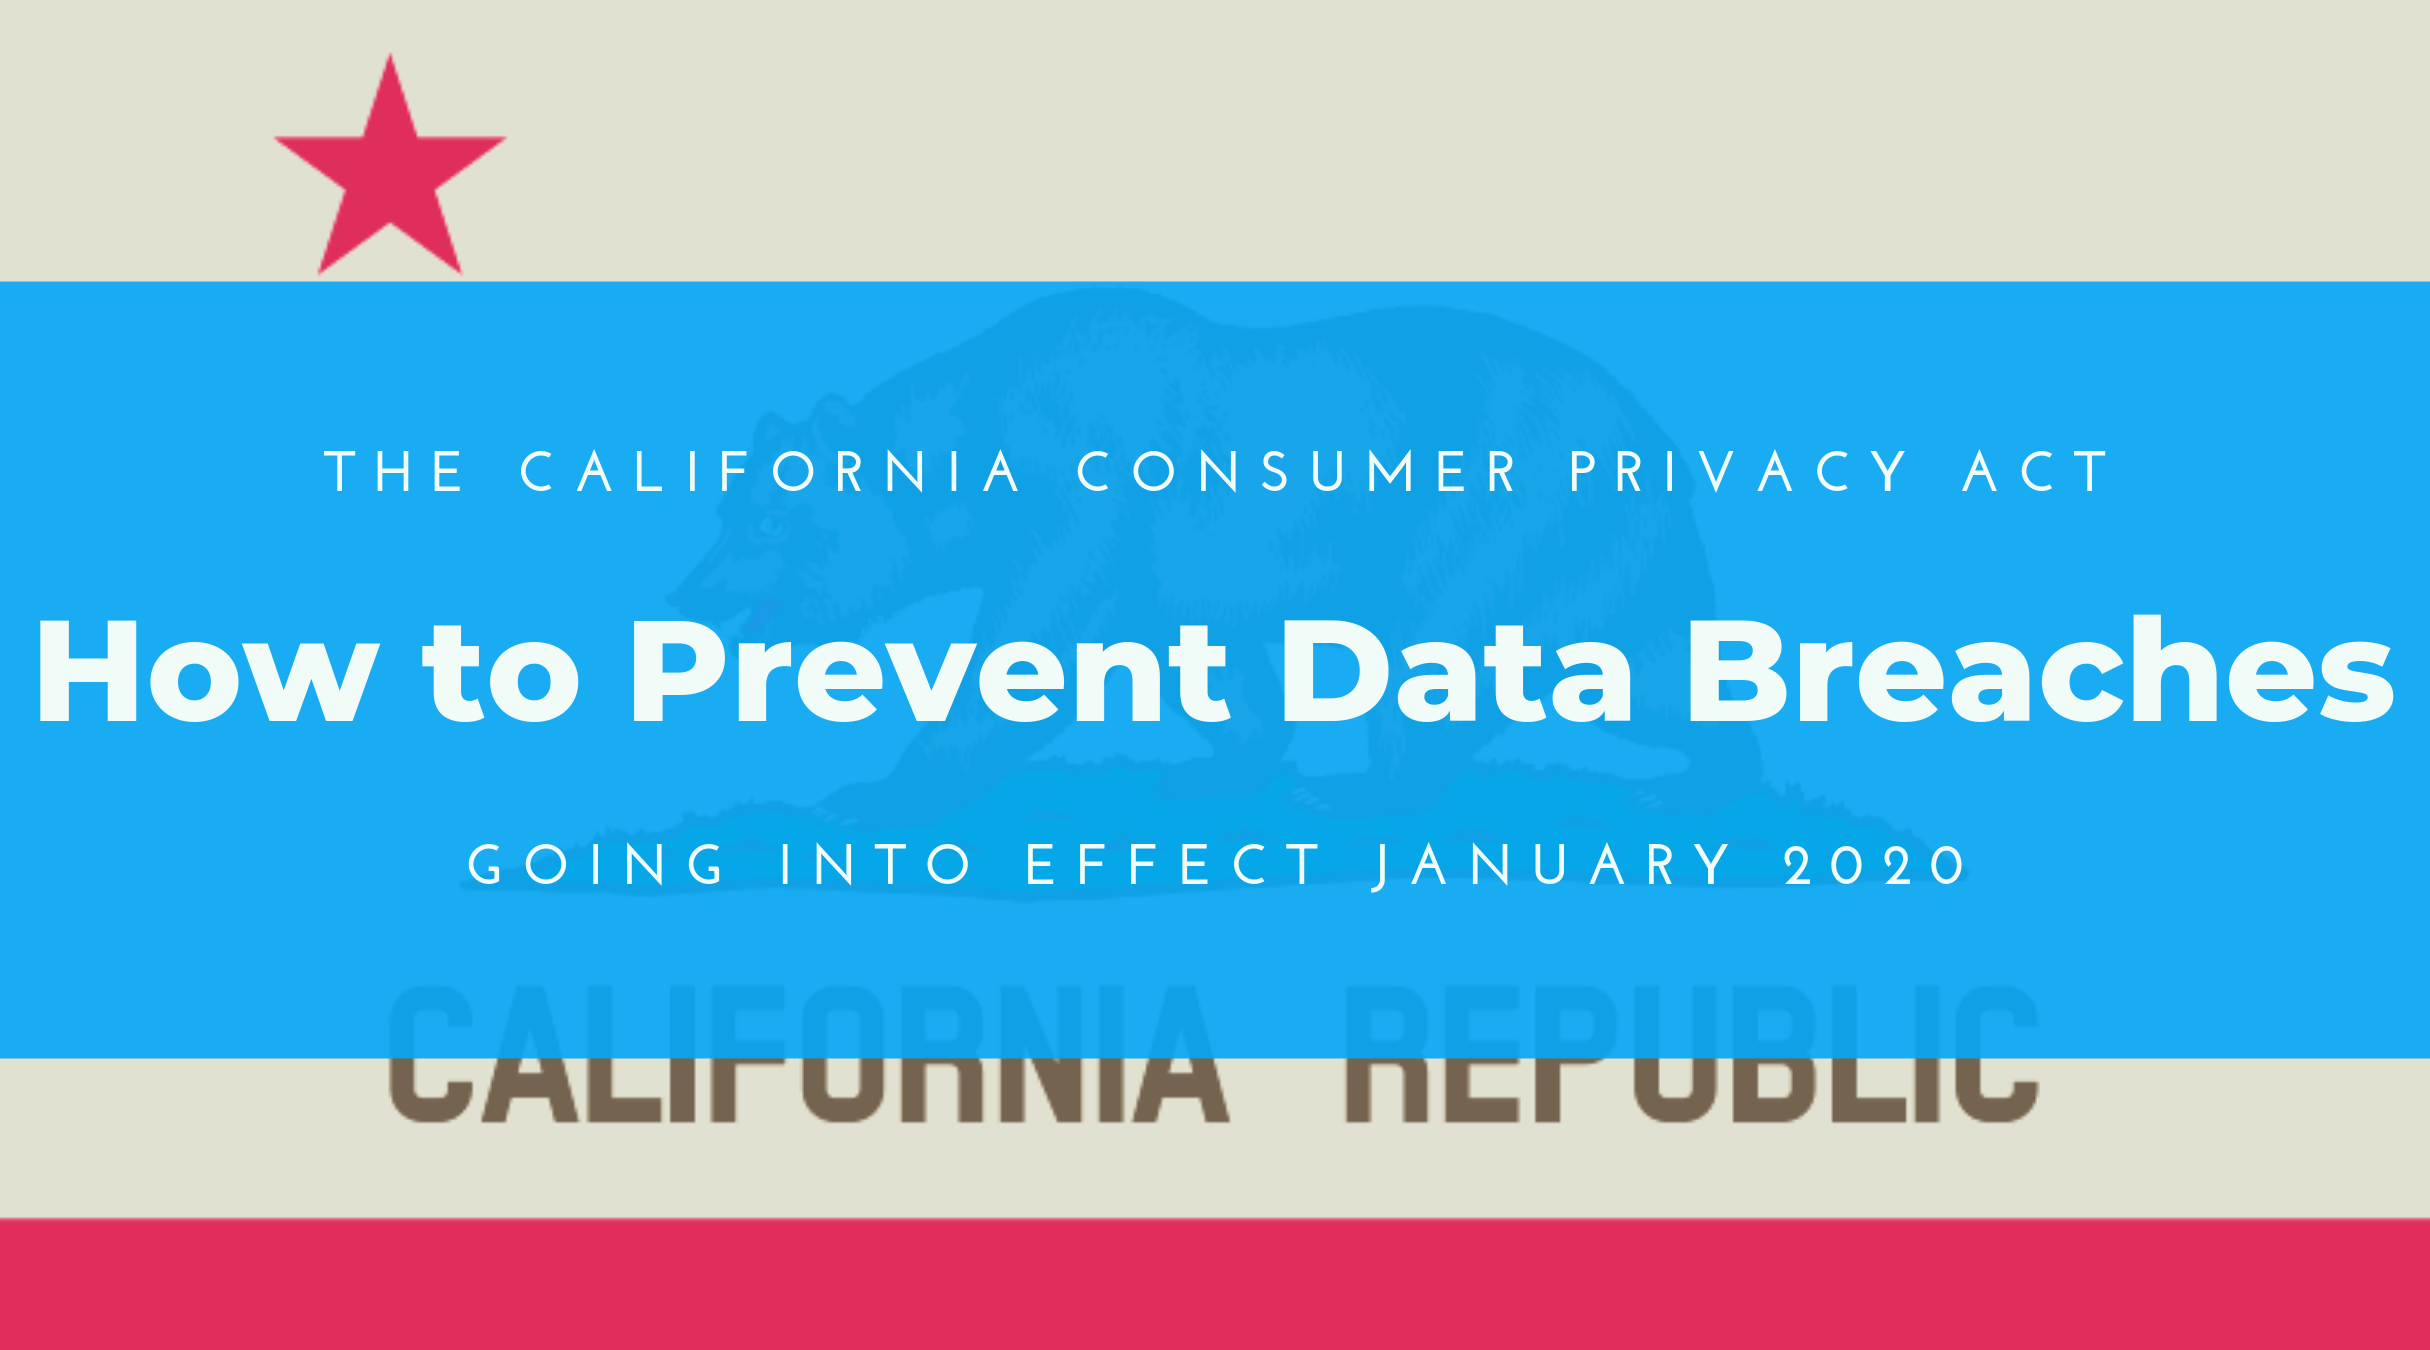 The California Consumer Privacy Act of 2018 (CCPA):  How to Prevent Data Breaches